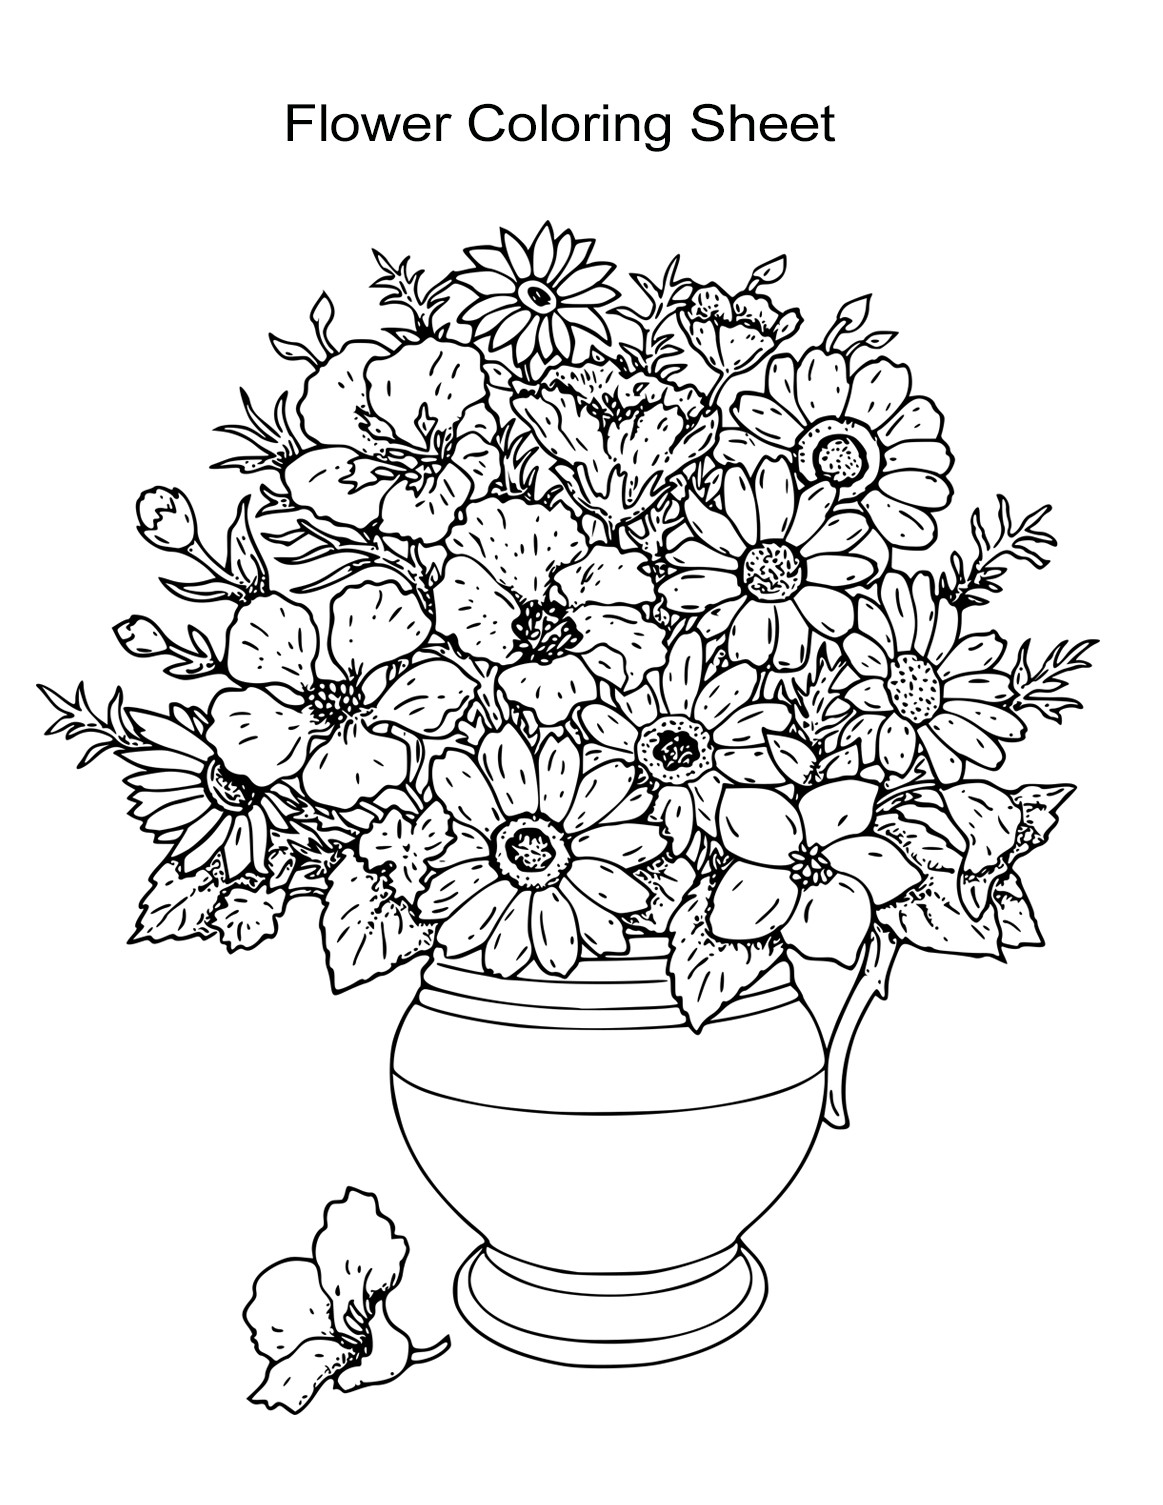 Best ideas about Flower Coloring Sheets For Girls . Save or Pin 10 Flower Coloring Sheets for Girls and Boys Free Now.